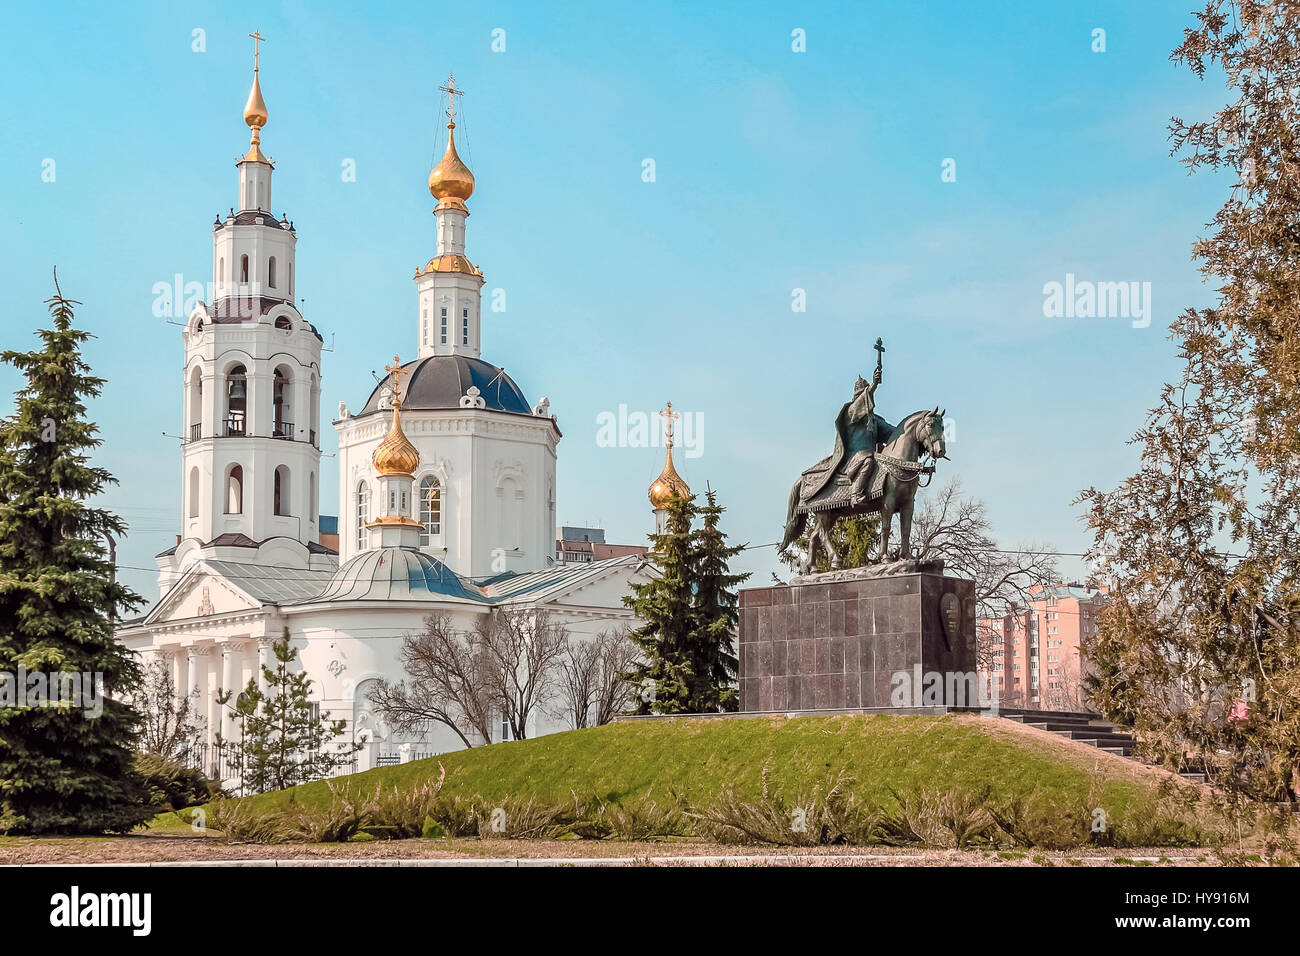 Epiphany Cathedral in Oryol - Stock Image